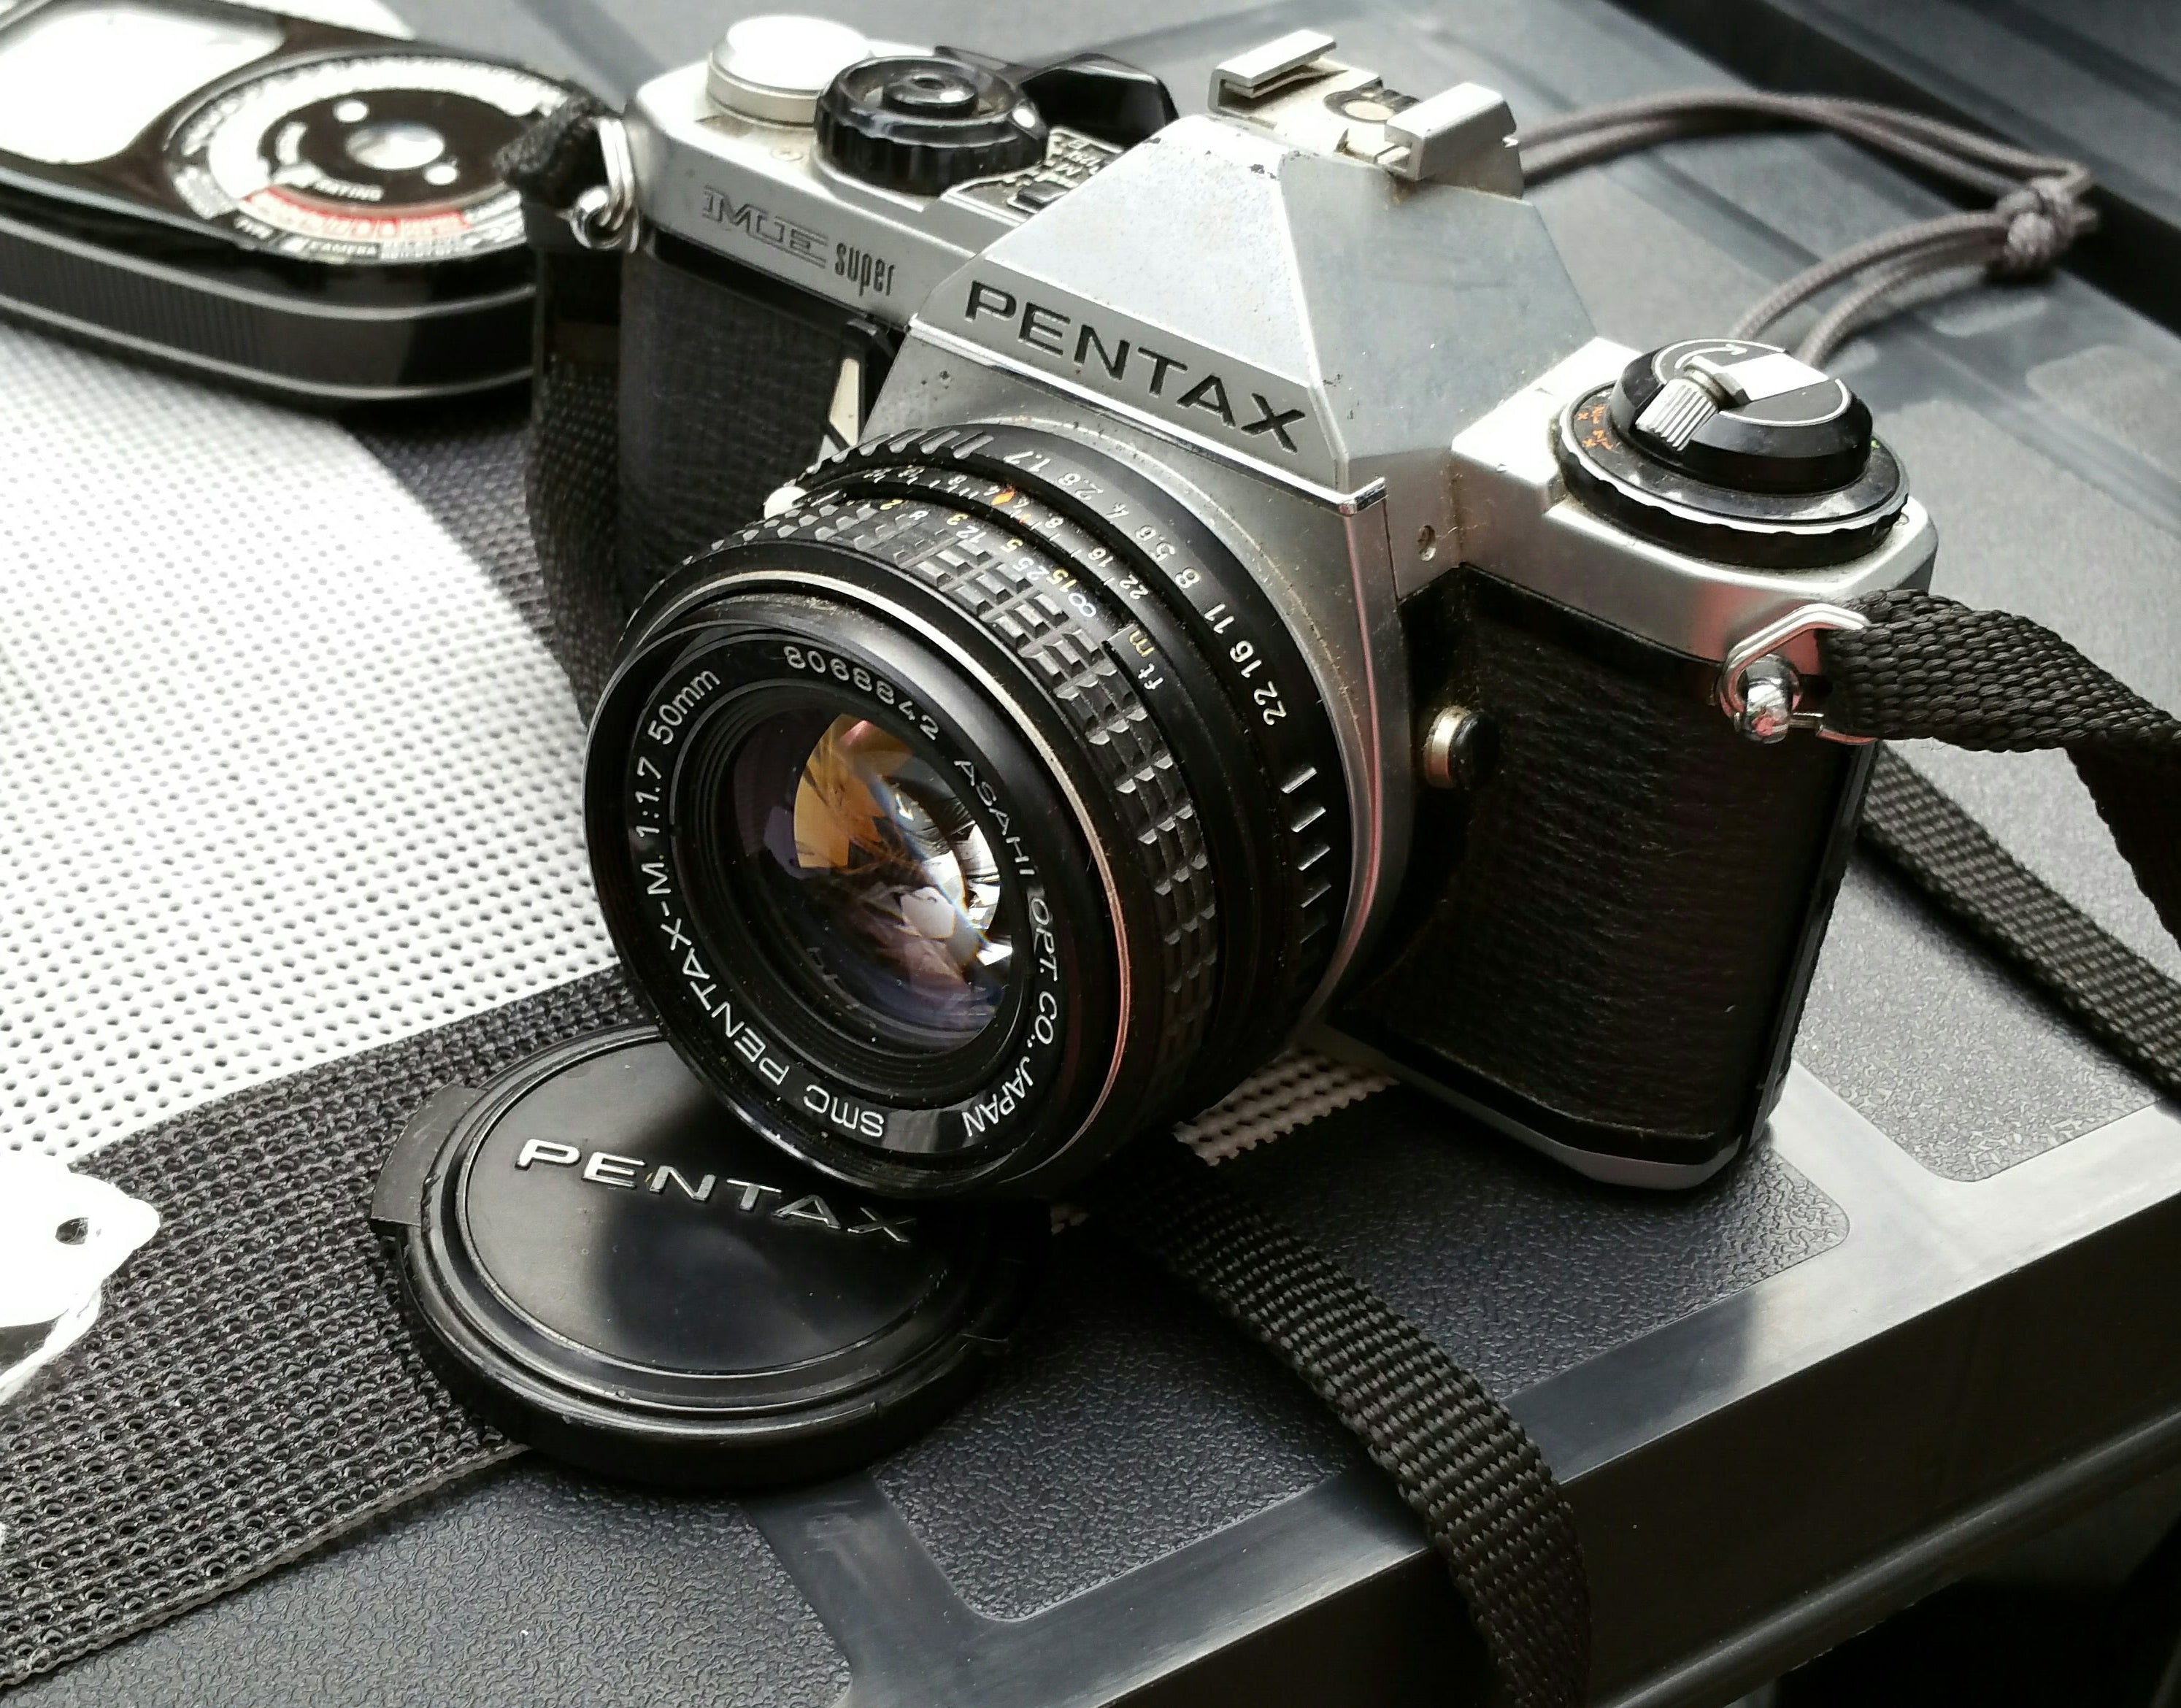 Pentax ME super, 35mm camera, SLR camera, Student